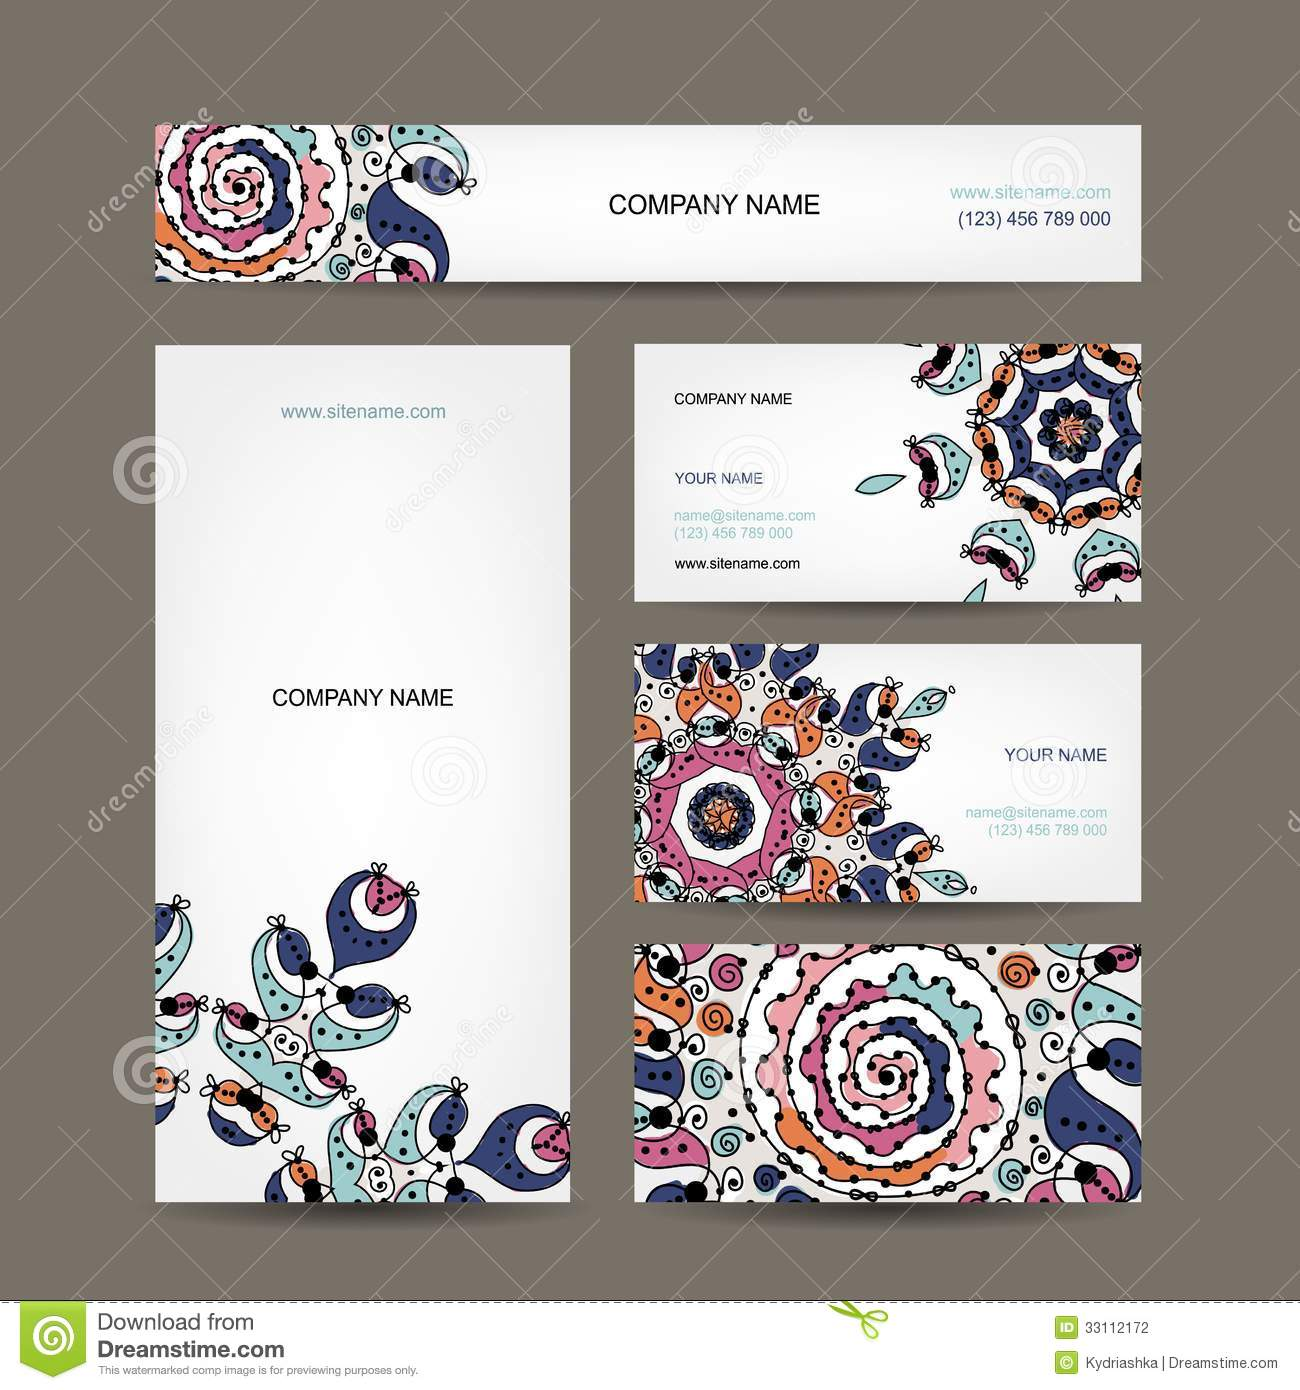 Business cards collection floral design stock photography for Business card collection